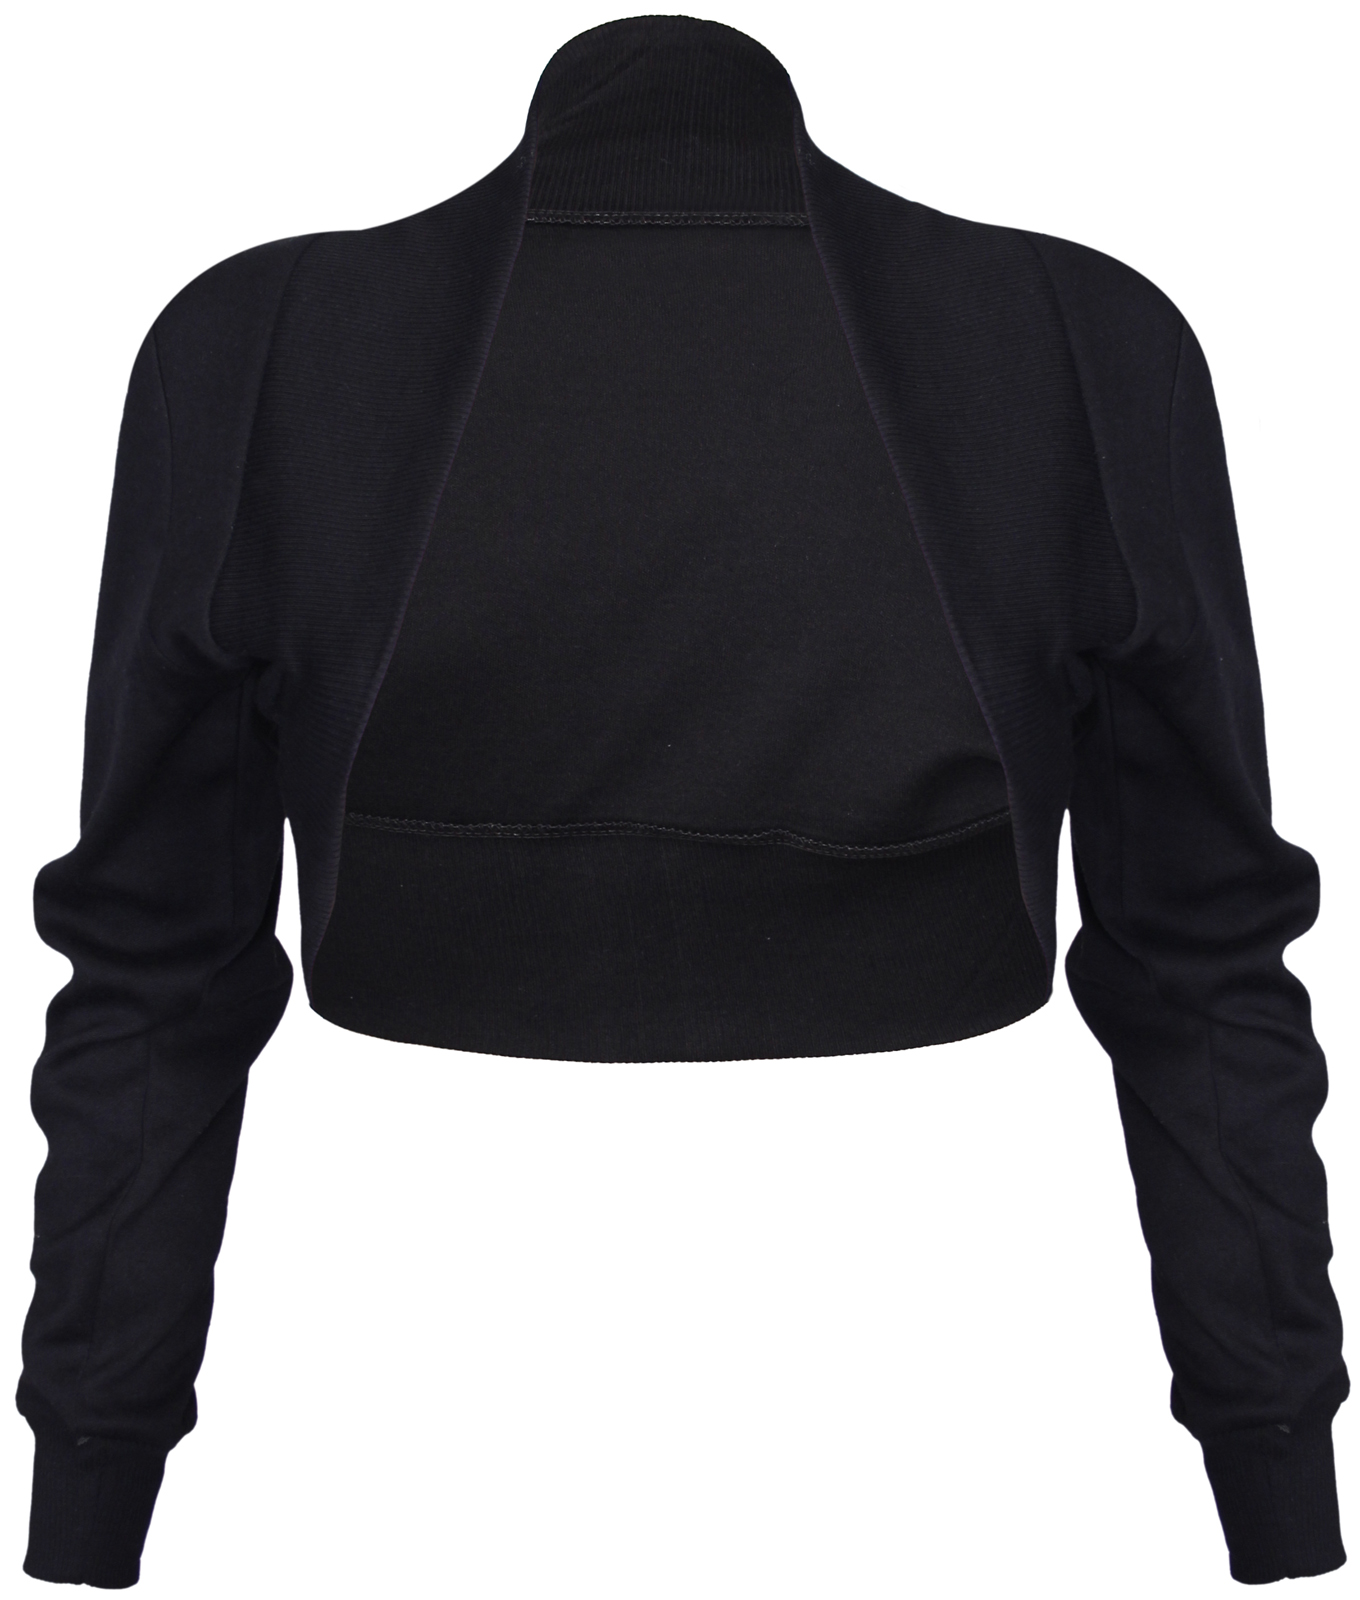 NEW-LADIES-LONG-SLEEVE-STRETCH-BOLERO-SHRUG-WOMENS-TOP thumbnail 2